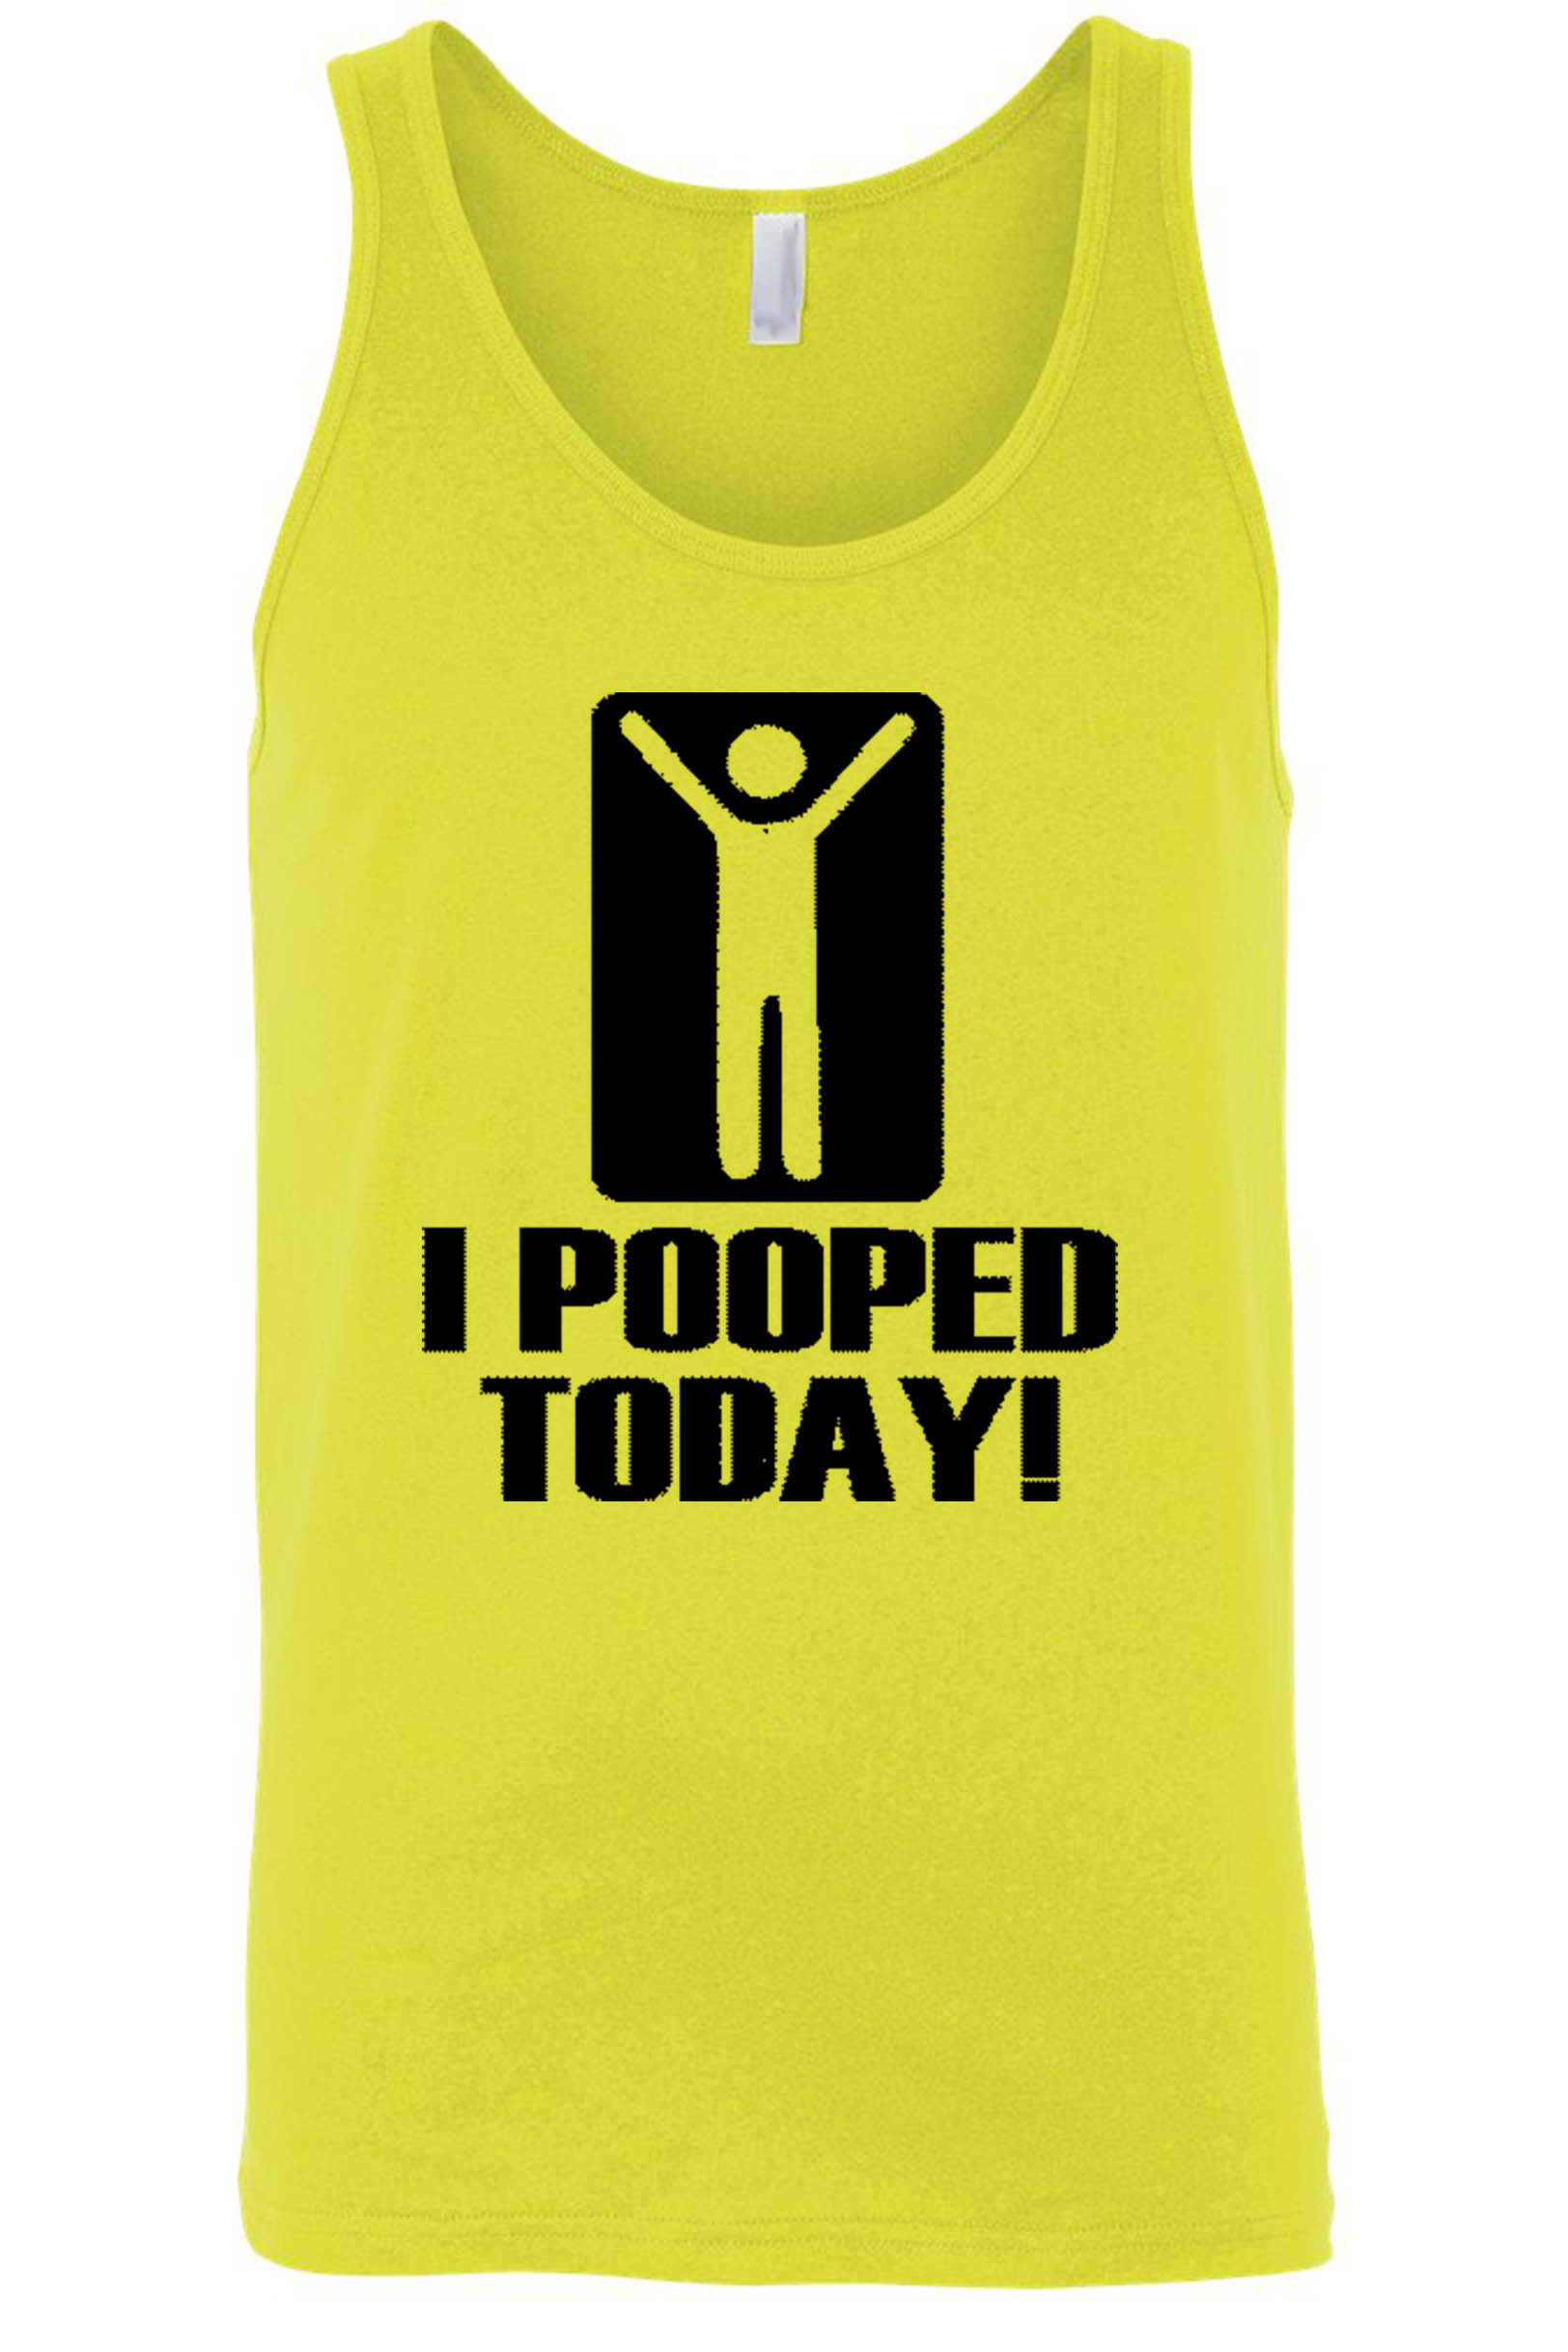 Men's Funny I Pooped Today! Tank Top Shirt